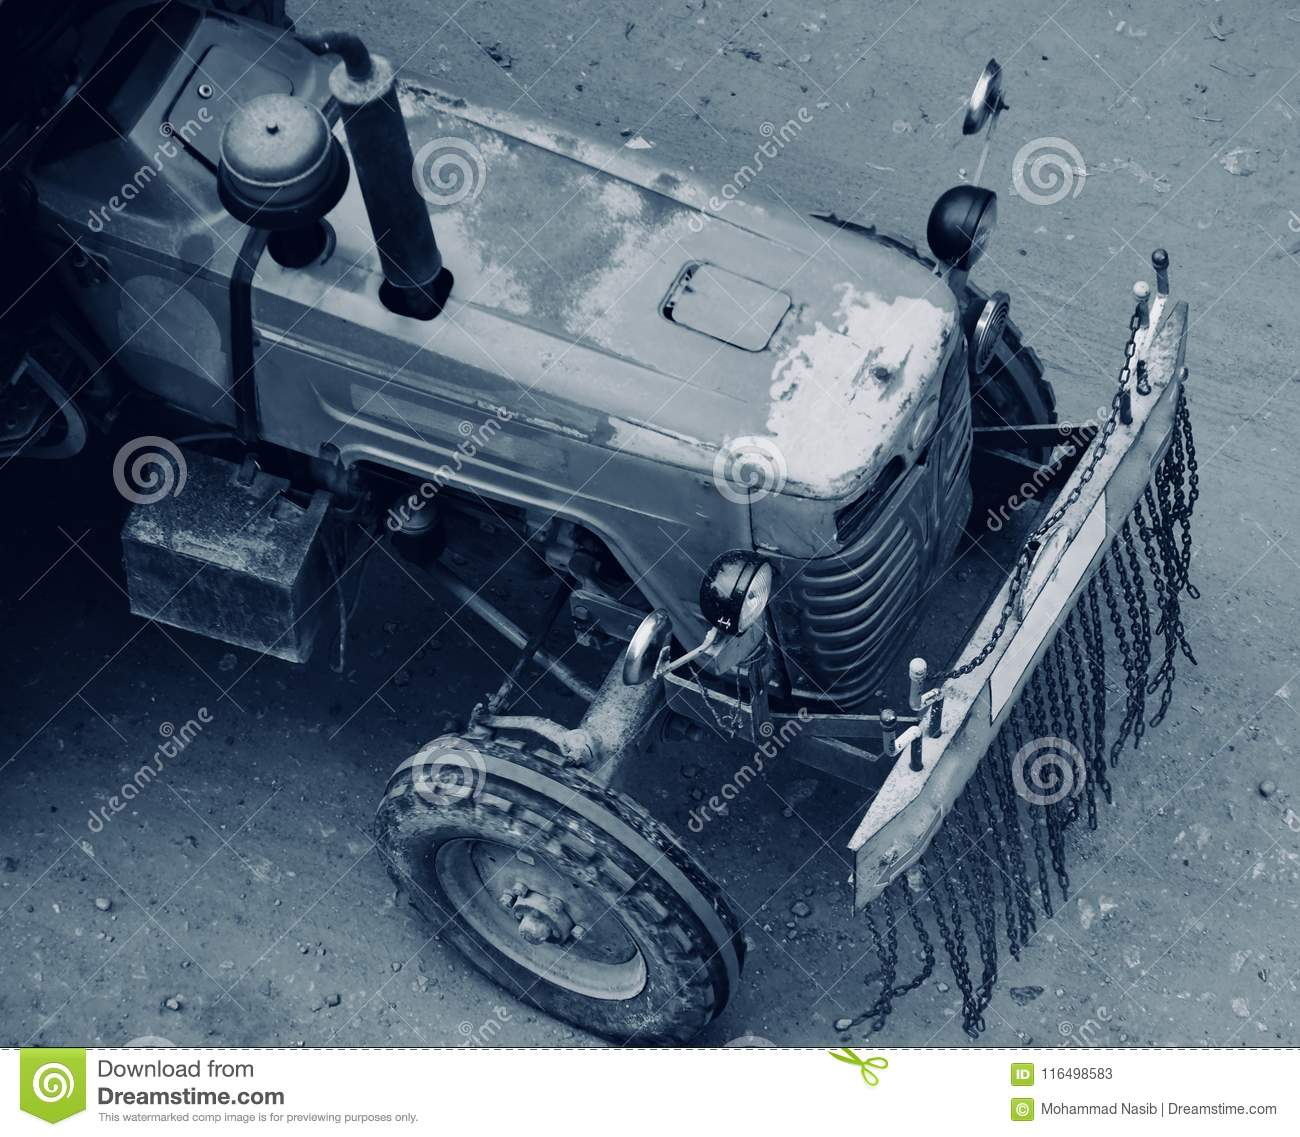 Download An Old Tractor Vehicles Running On The Indian Streets Stock Image - Image of isolated, truck: 116498583